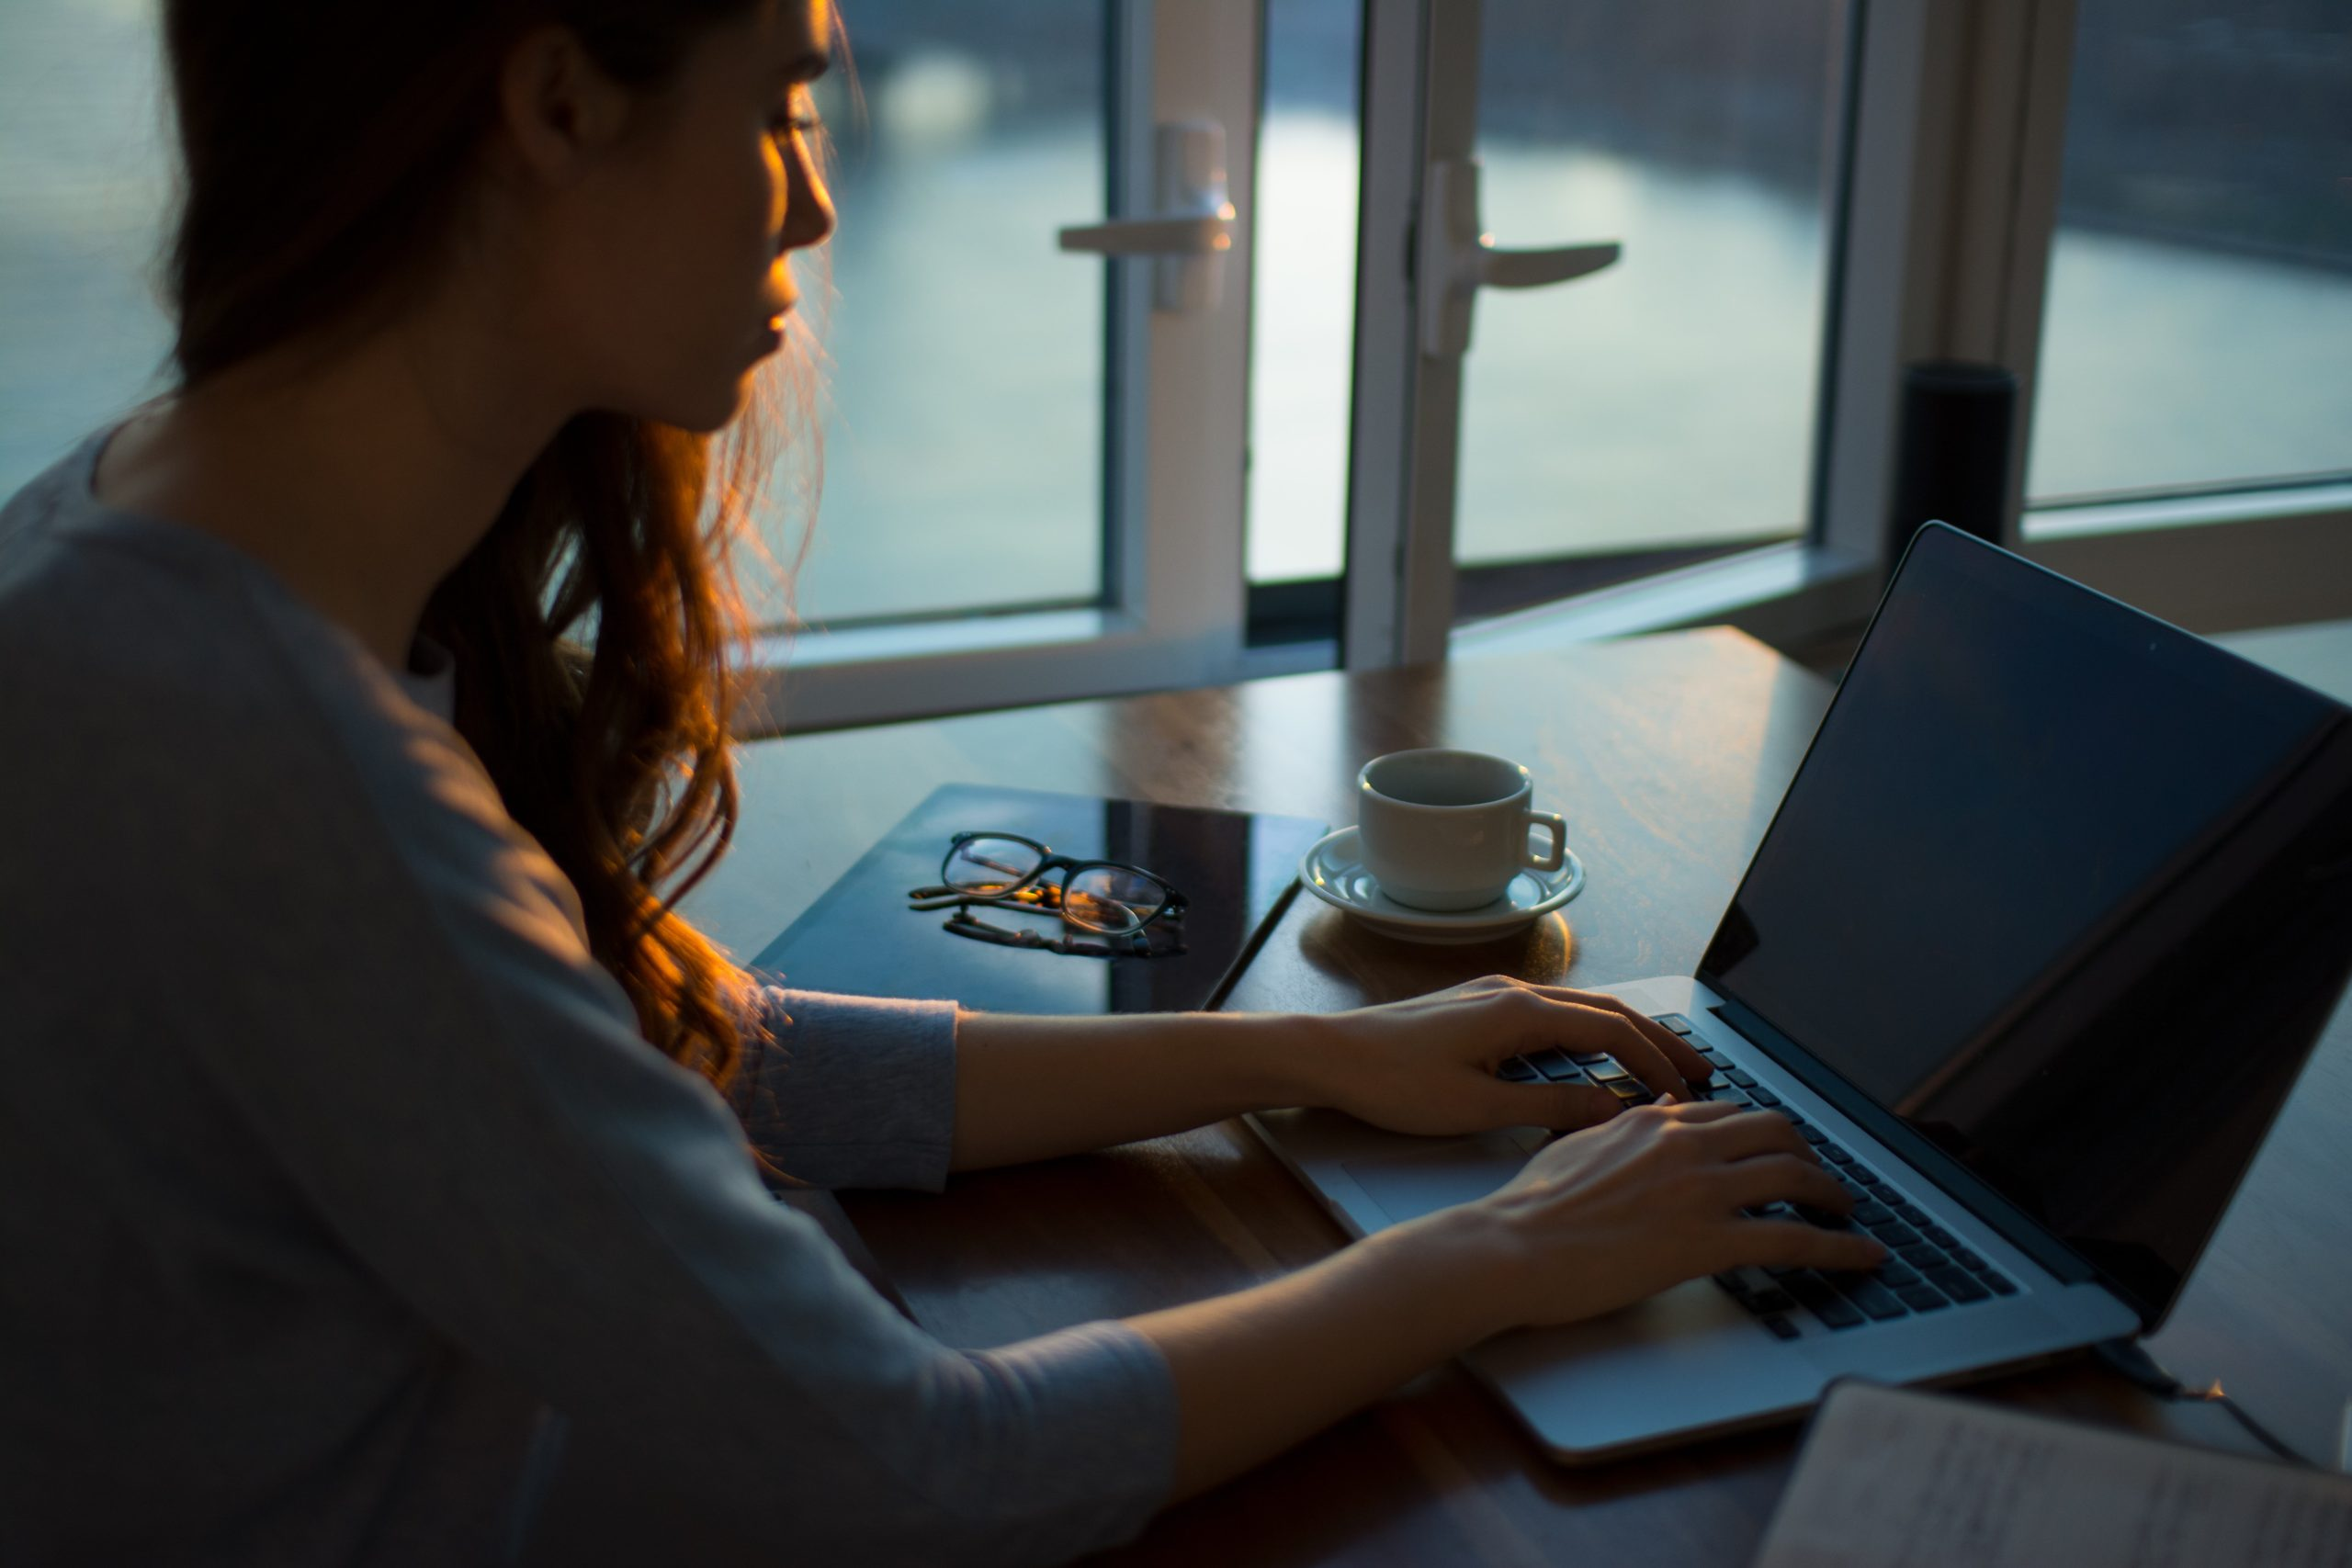 woman in financial distress looking at a laptop